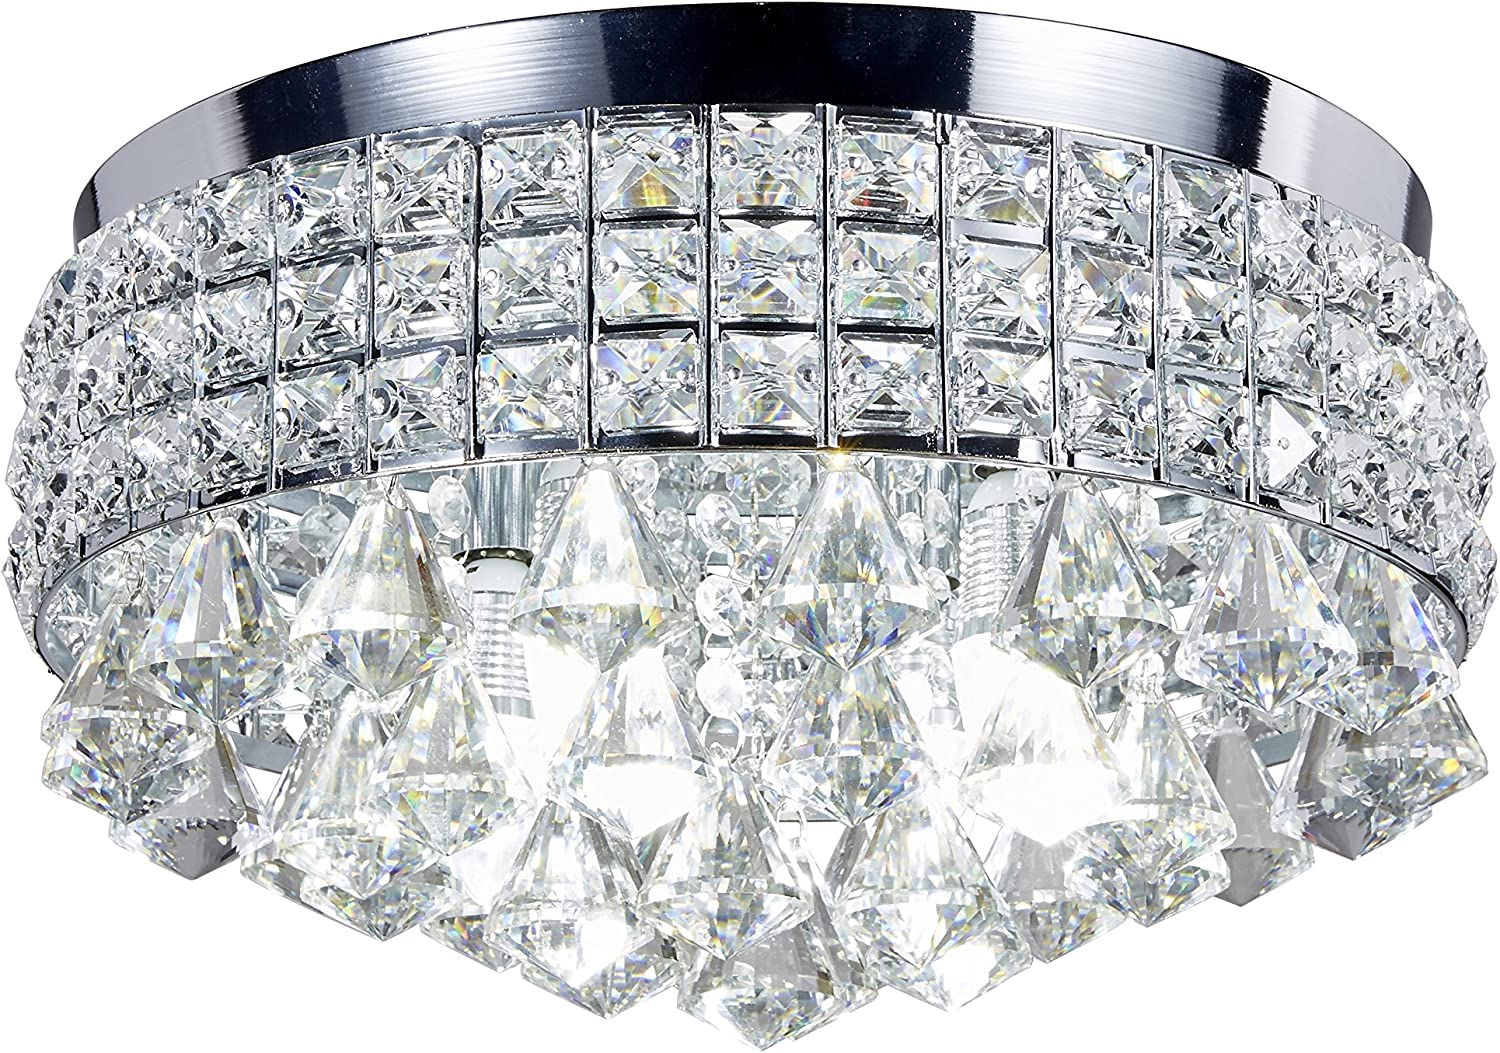 New Galaxy 4-Light Chrome Finish Metal Shade Flushmount Crystal Chandelier Ceiling Fixture